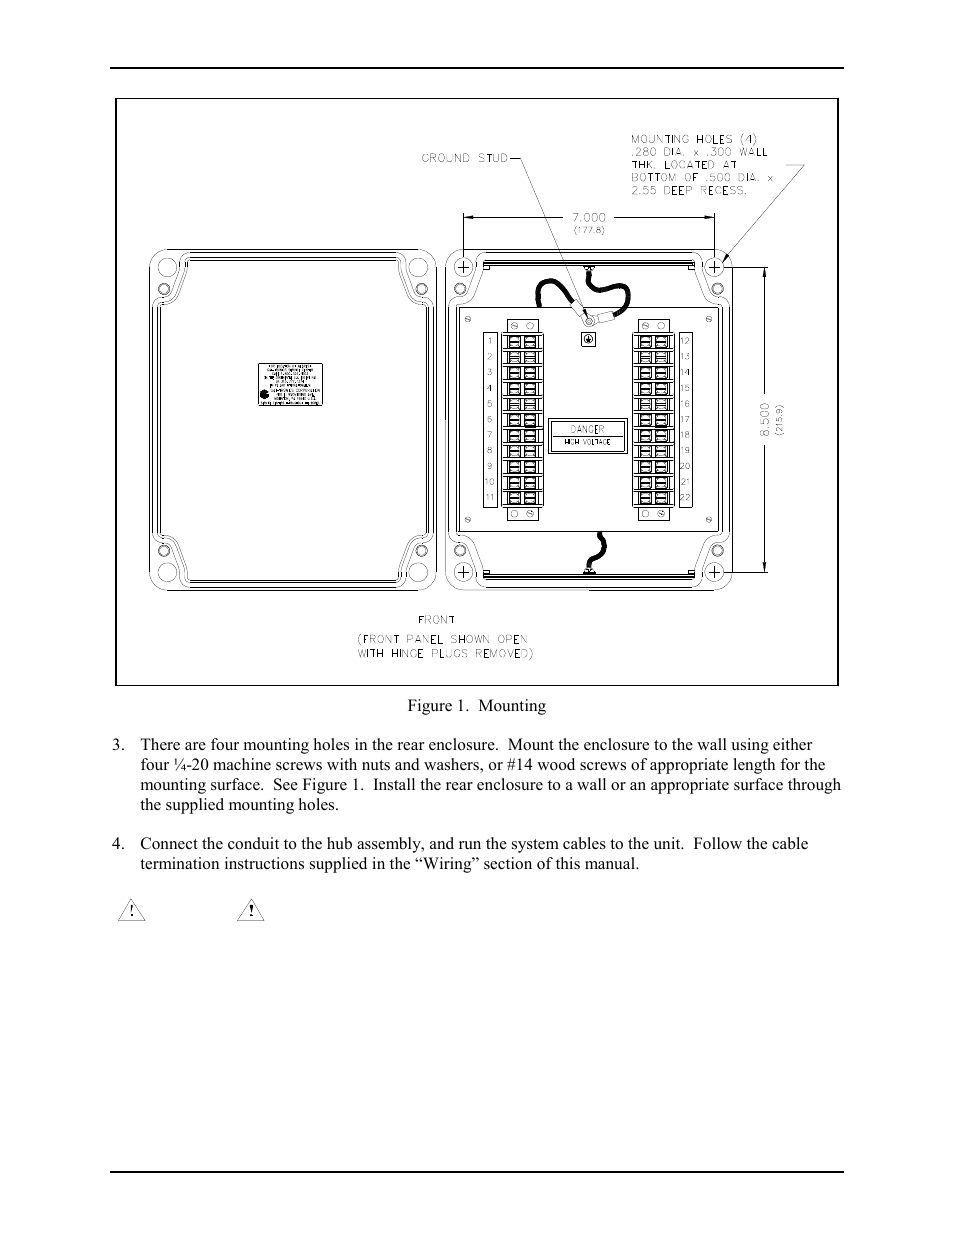 Wiring A Junction Box Diagram Manual Guide